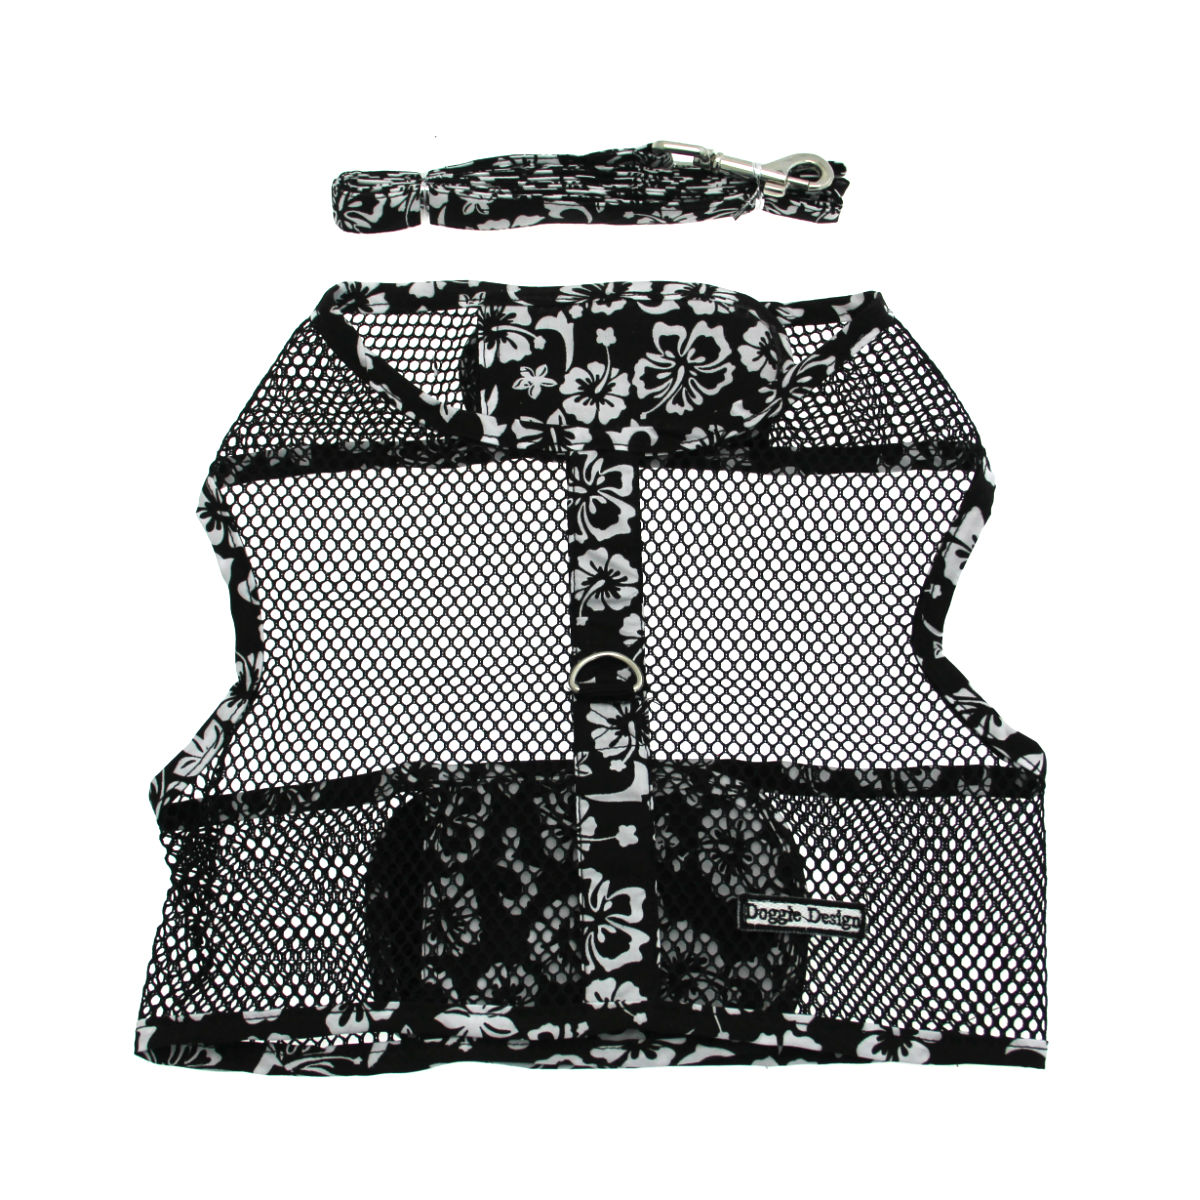 Hawaiian Netted Dog Harness w/ Leash - Black